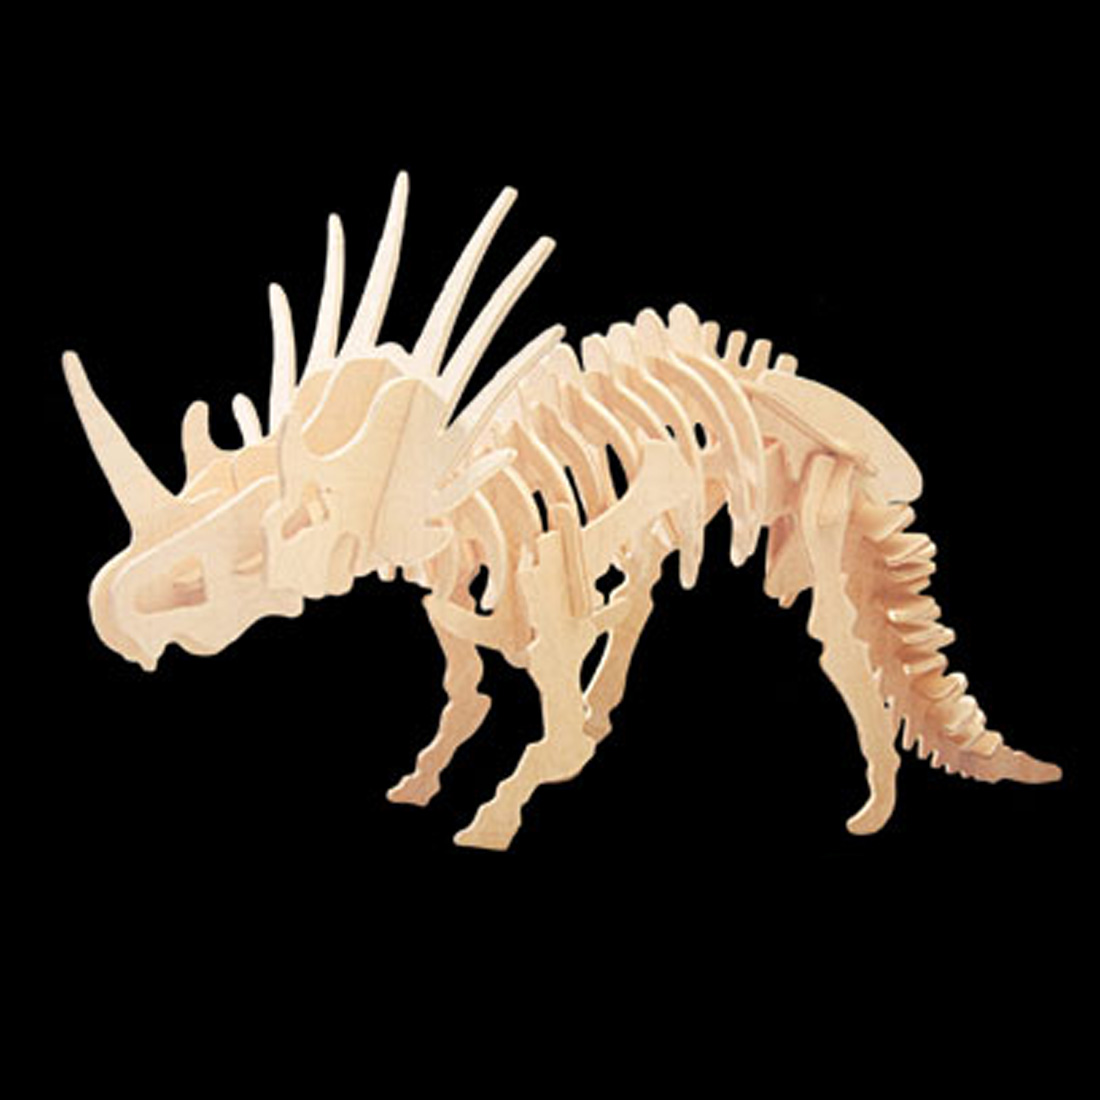 Styracosaurus Dinosaur Woodcraft Construction Kit Model Puzzle for DIY Lover